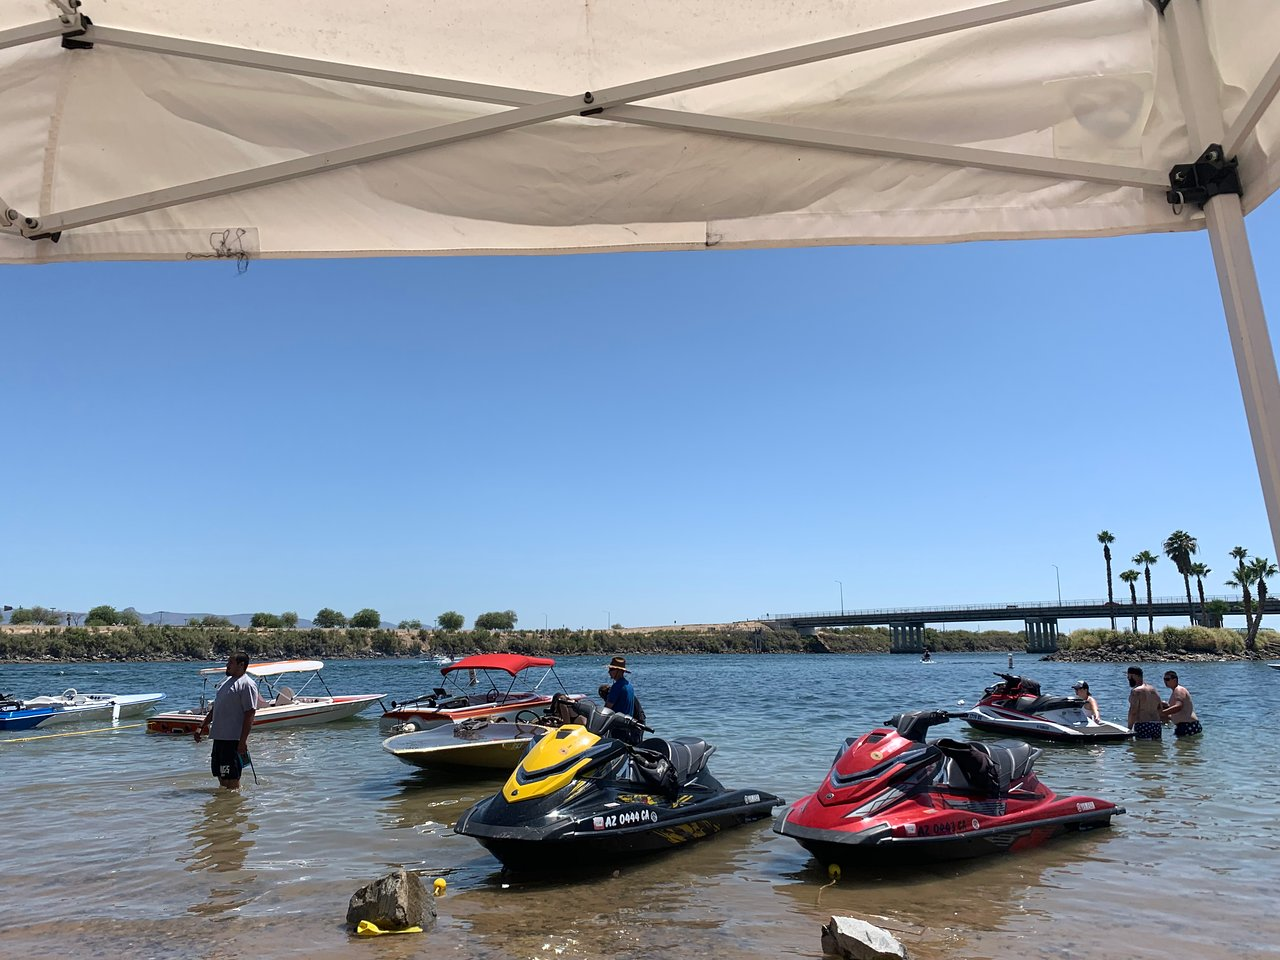 Dave S Jet Ski Rentals Bullhead City 2020 All You Need To Know Before You Go With Photos Tripadvisor